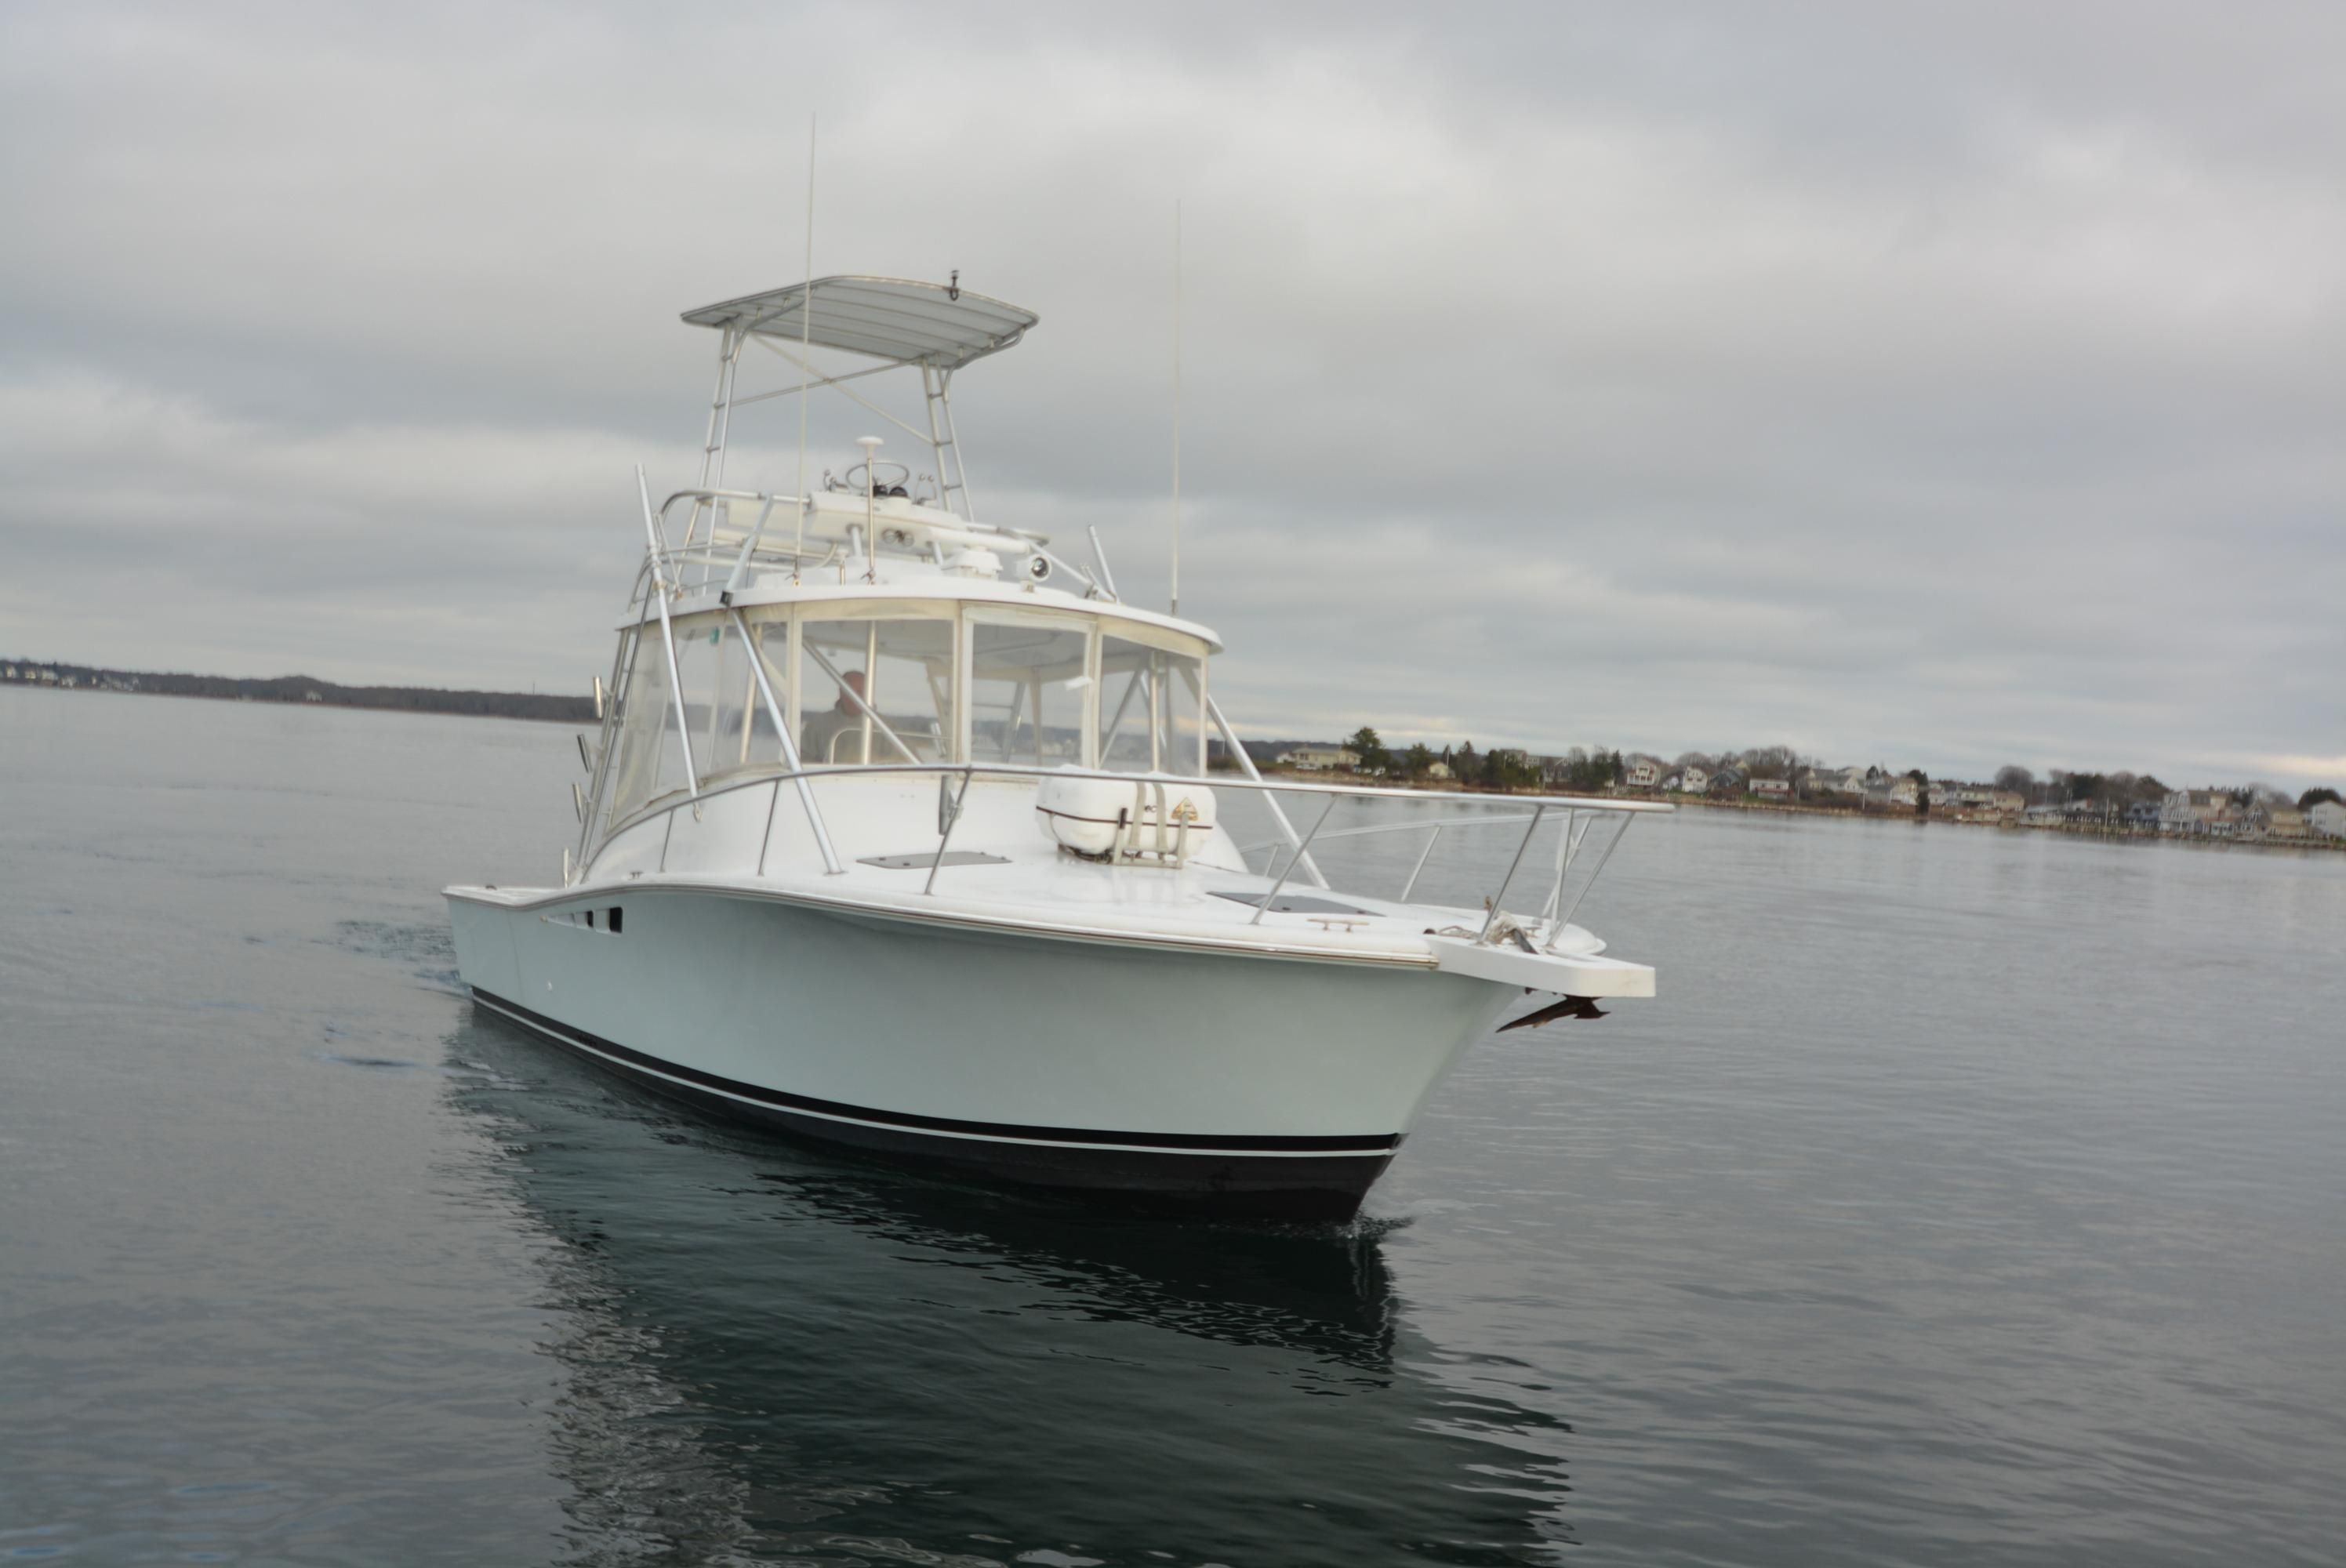 Luhrs Boats For Sale >> 1995 Luhrs 32 Open Power Boat For Sale - www.yachtworld.com